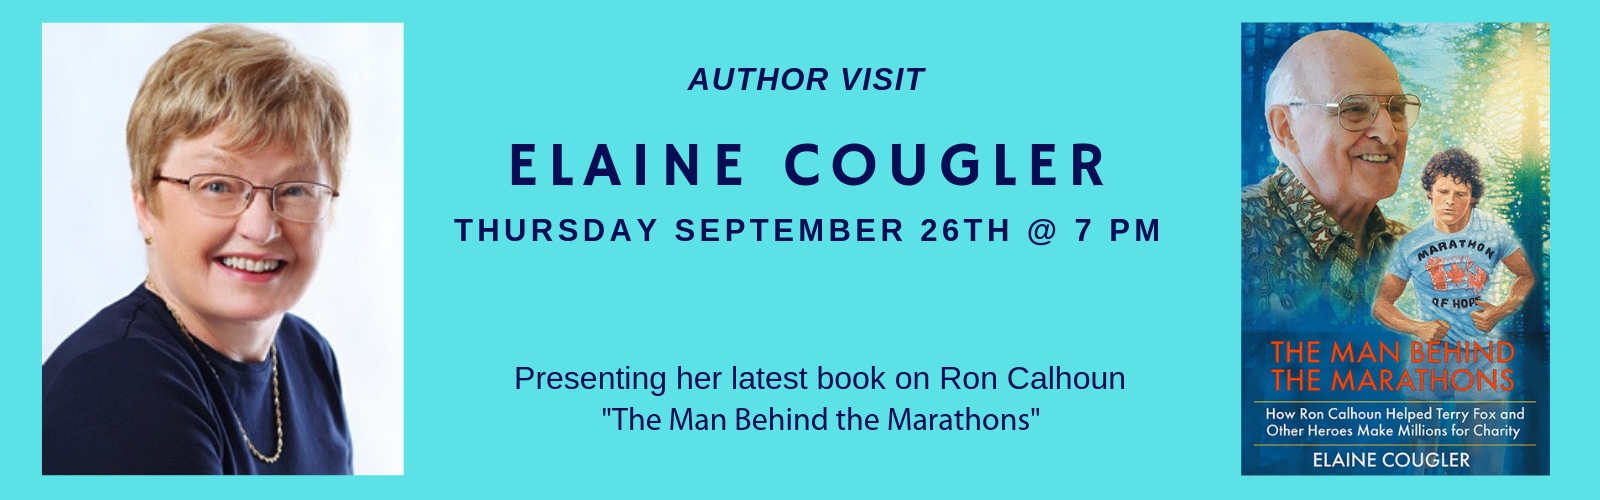 Author Visit Elaine Cougler Thursday September 26th at 7 pm presenting her latest book on Ron Calhoun, the man behind the marathons